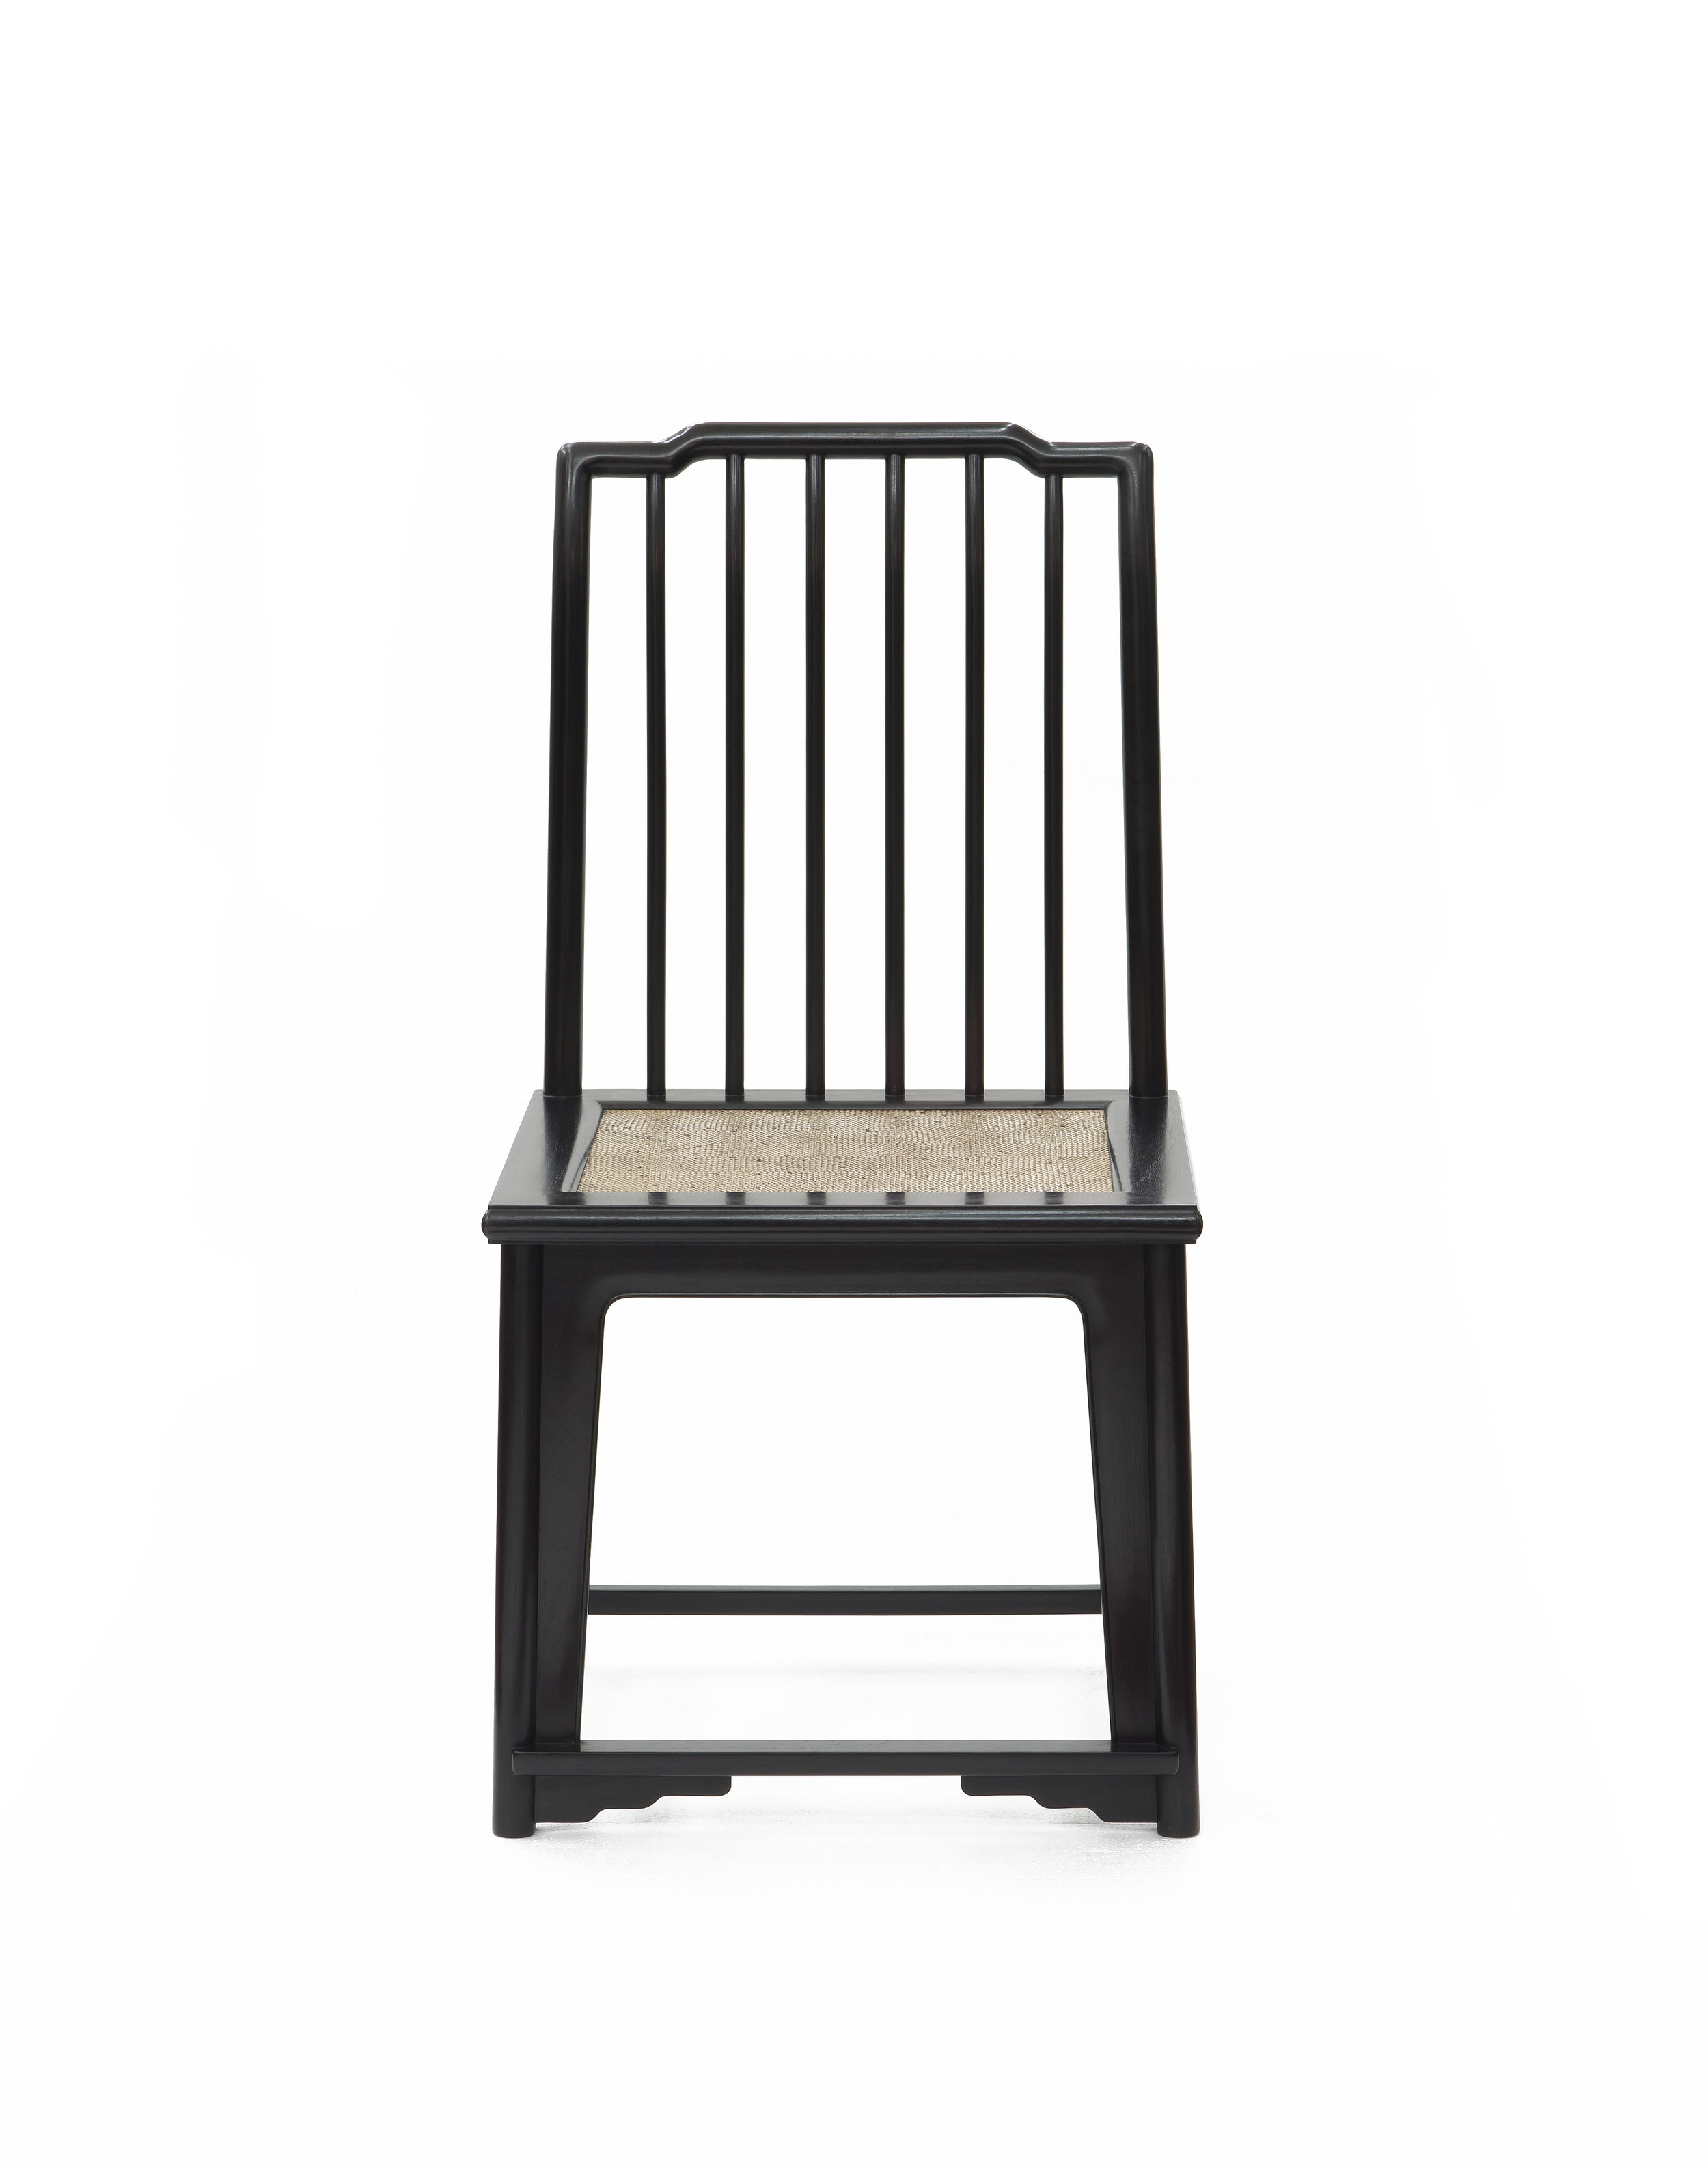 ....chinese furniture | mandarin oriental comb style side chair..中式家具 | 文华东方梳子靠背椅....